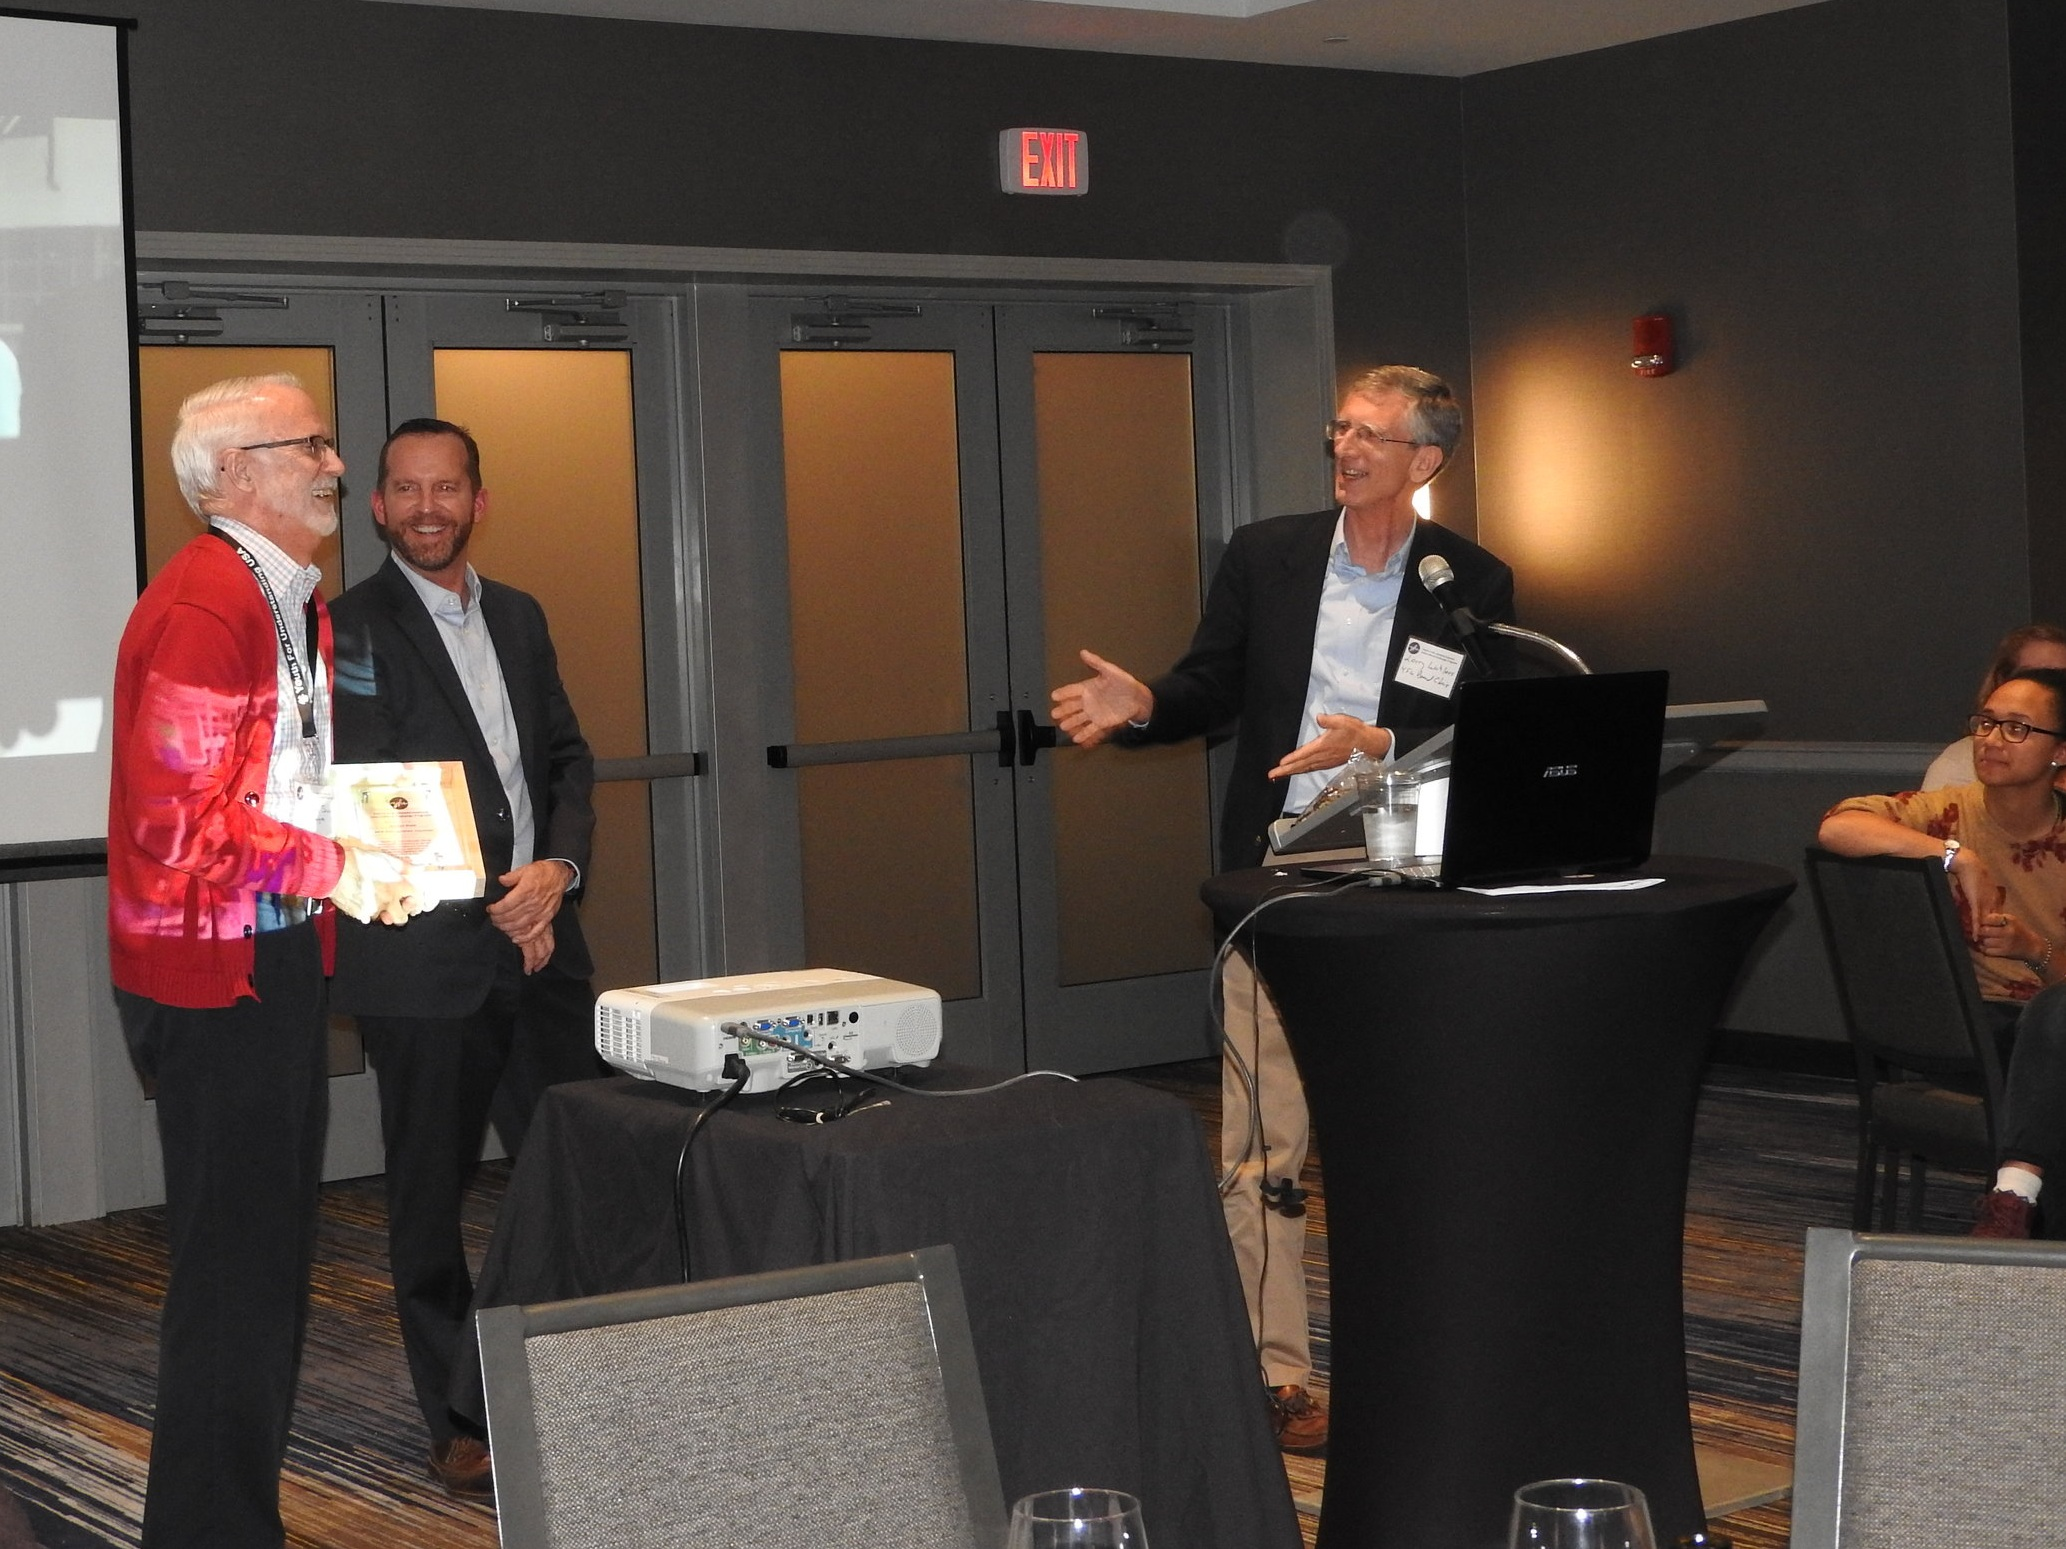 Gordon Snow receives the 2018 Distinguished Volunteer Award from Scott Messing and Ambassador Laurence Wohlers.